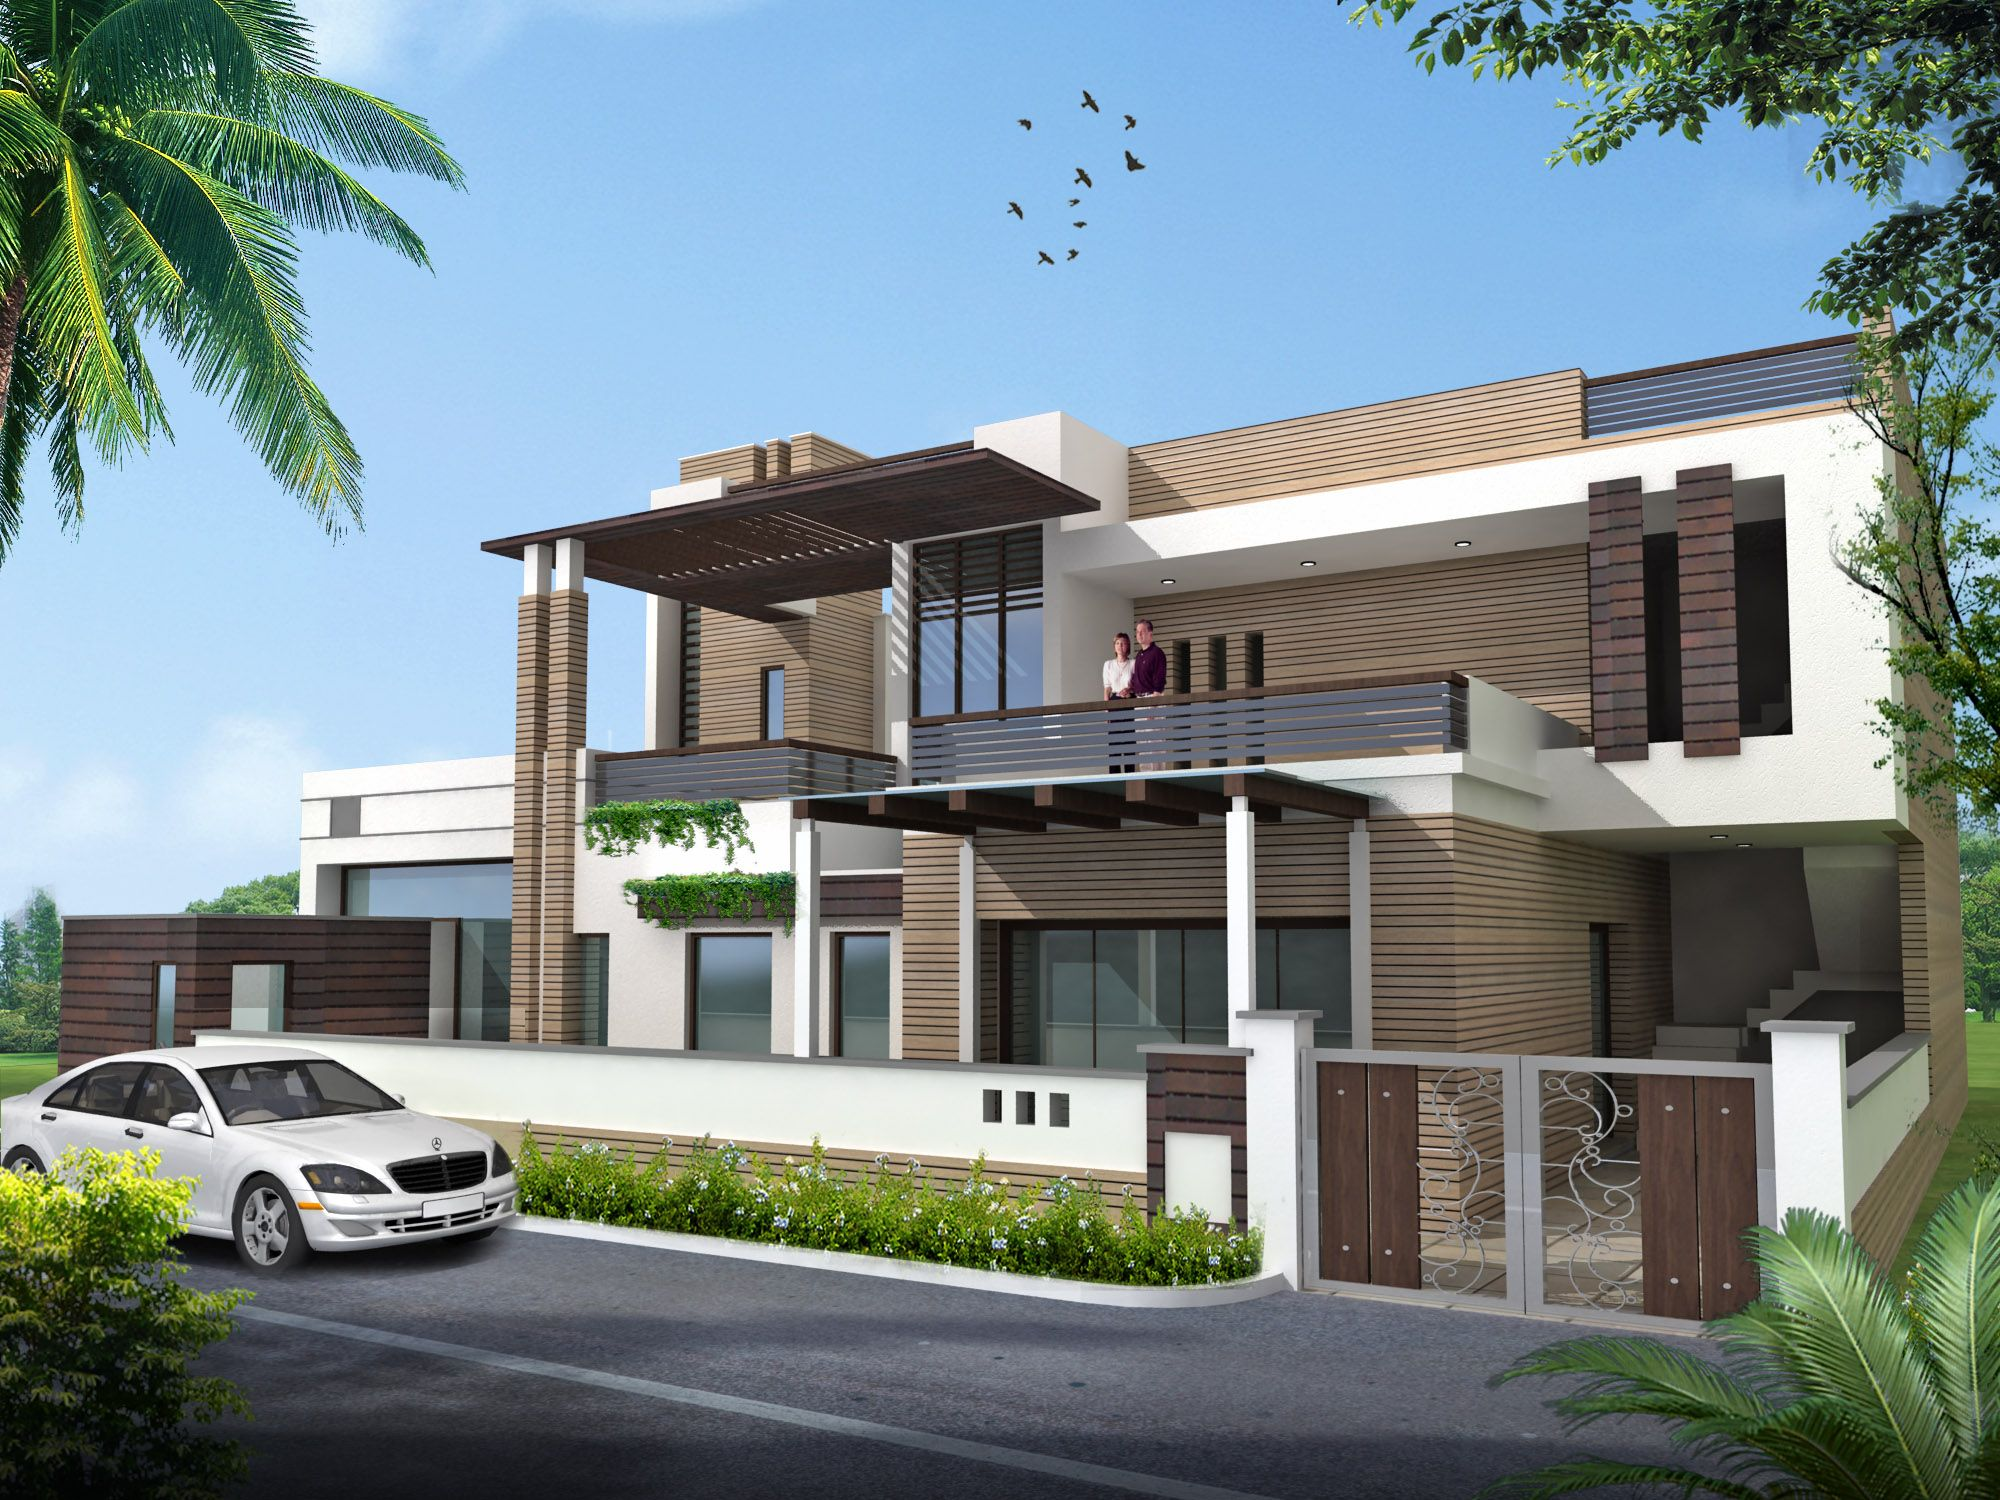 House design outside - Image For House Designs Outside Awesome Ideas